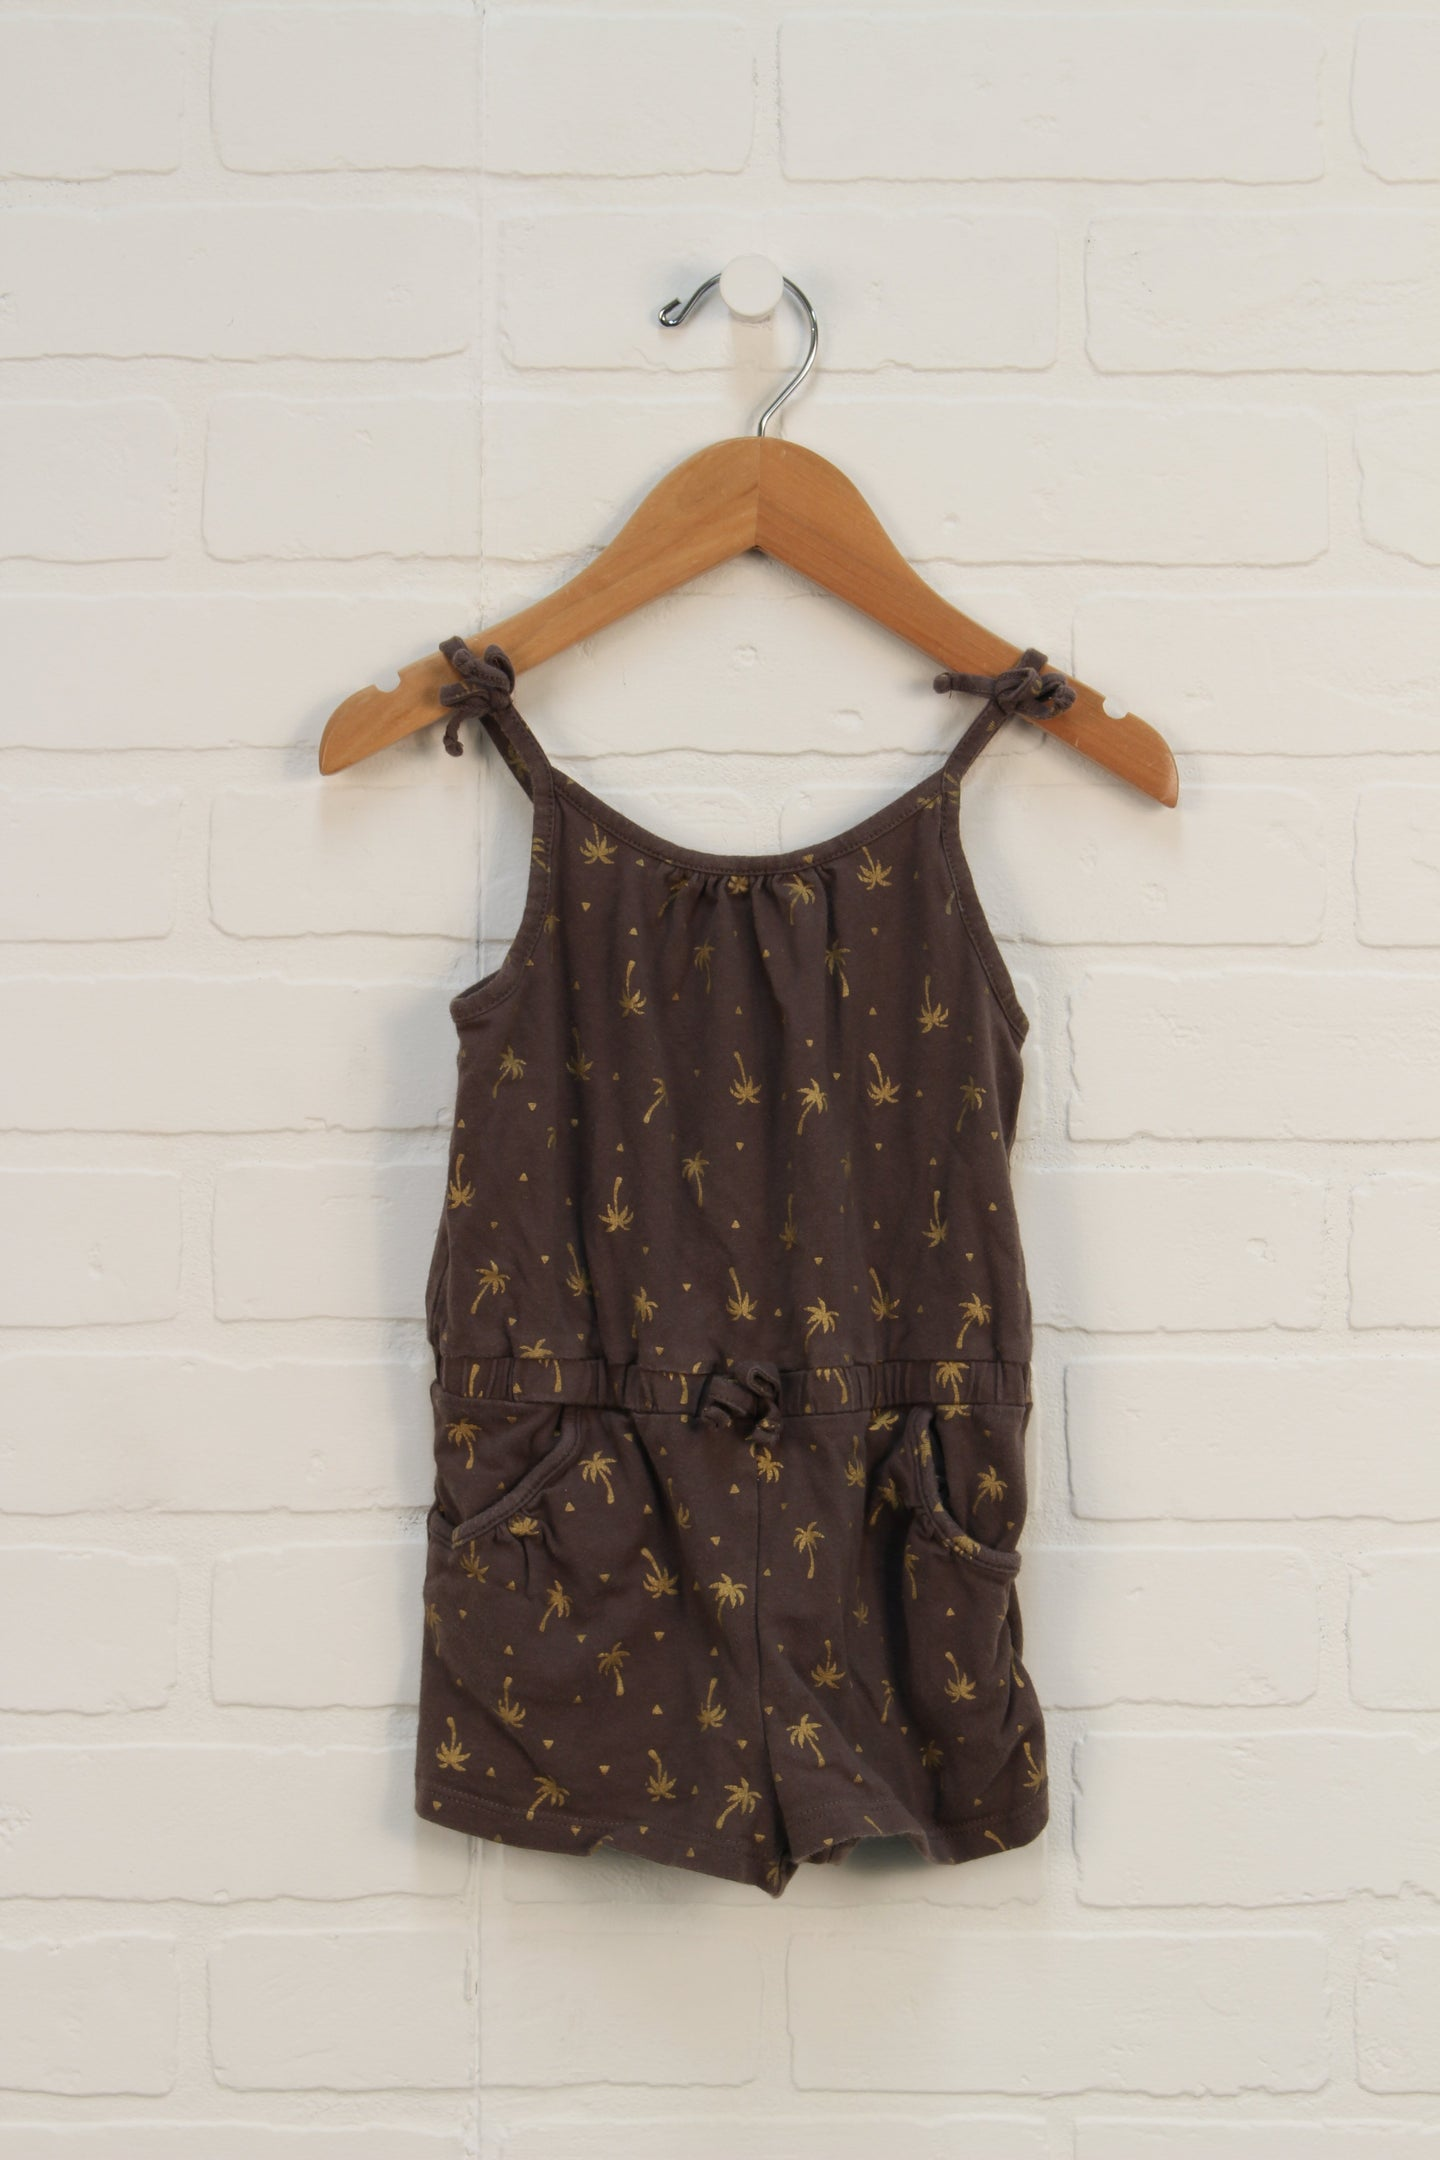 Brown + Gold Graphic Romper: Palm Trees (Size 92/1.5-2Y)